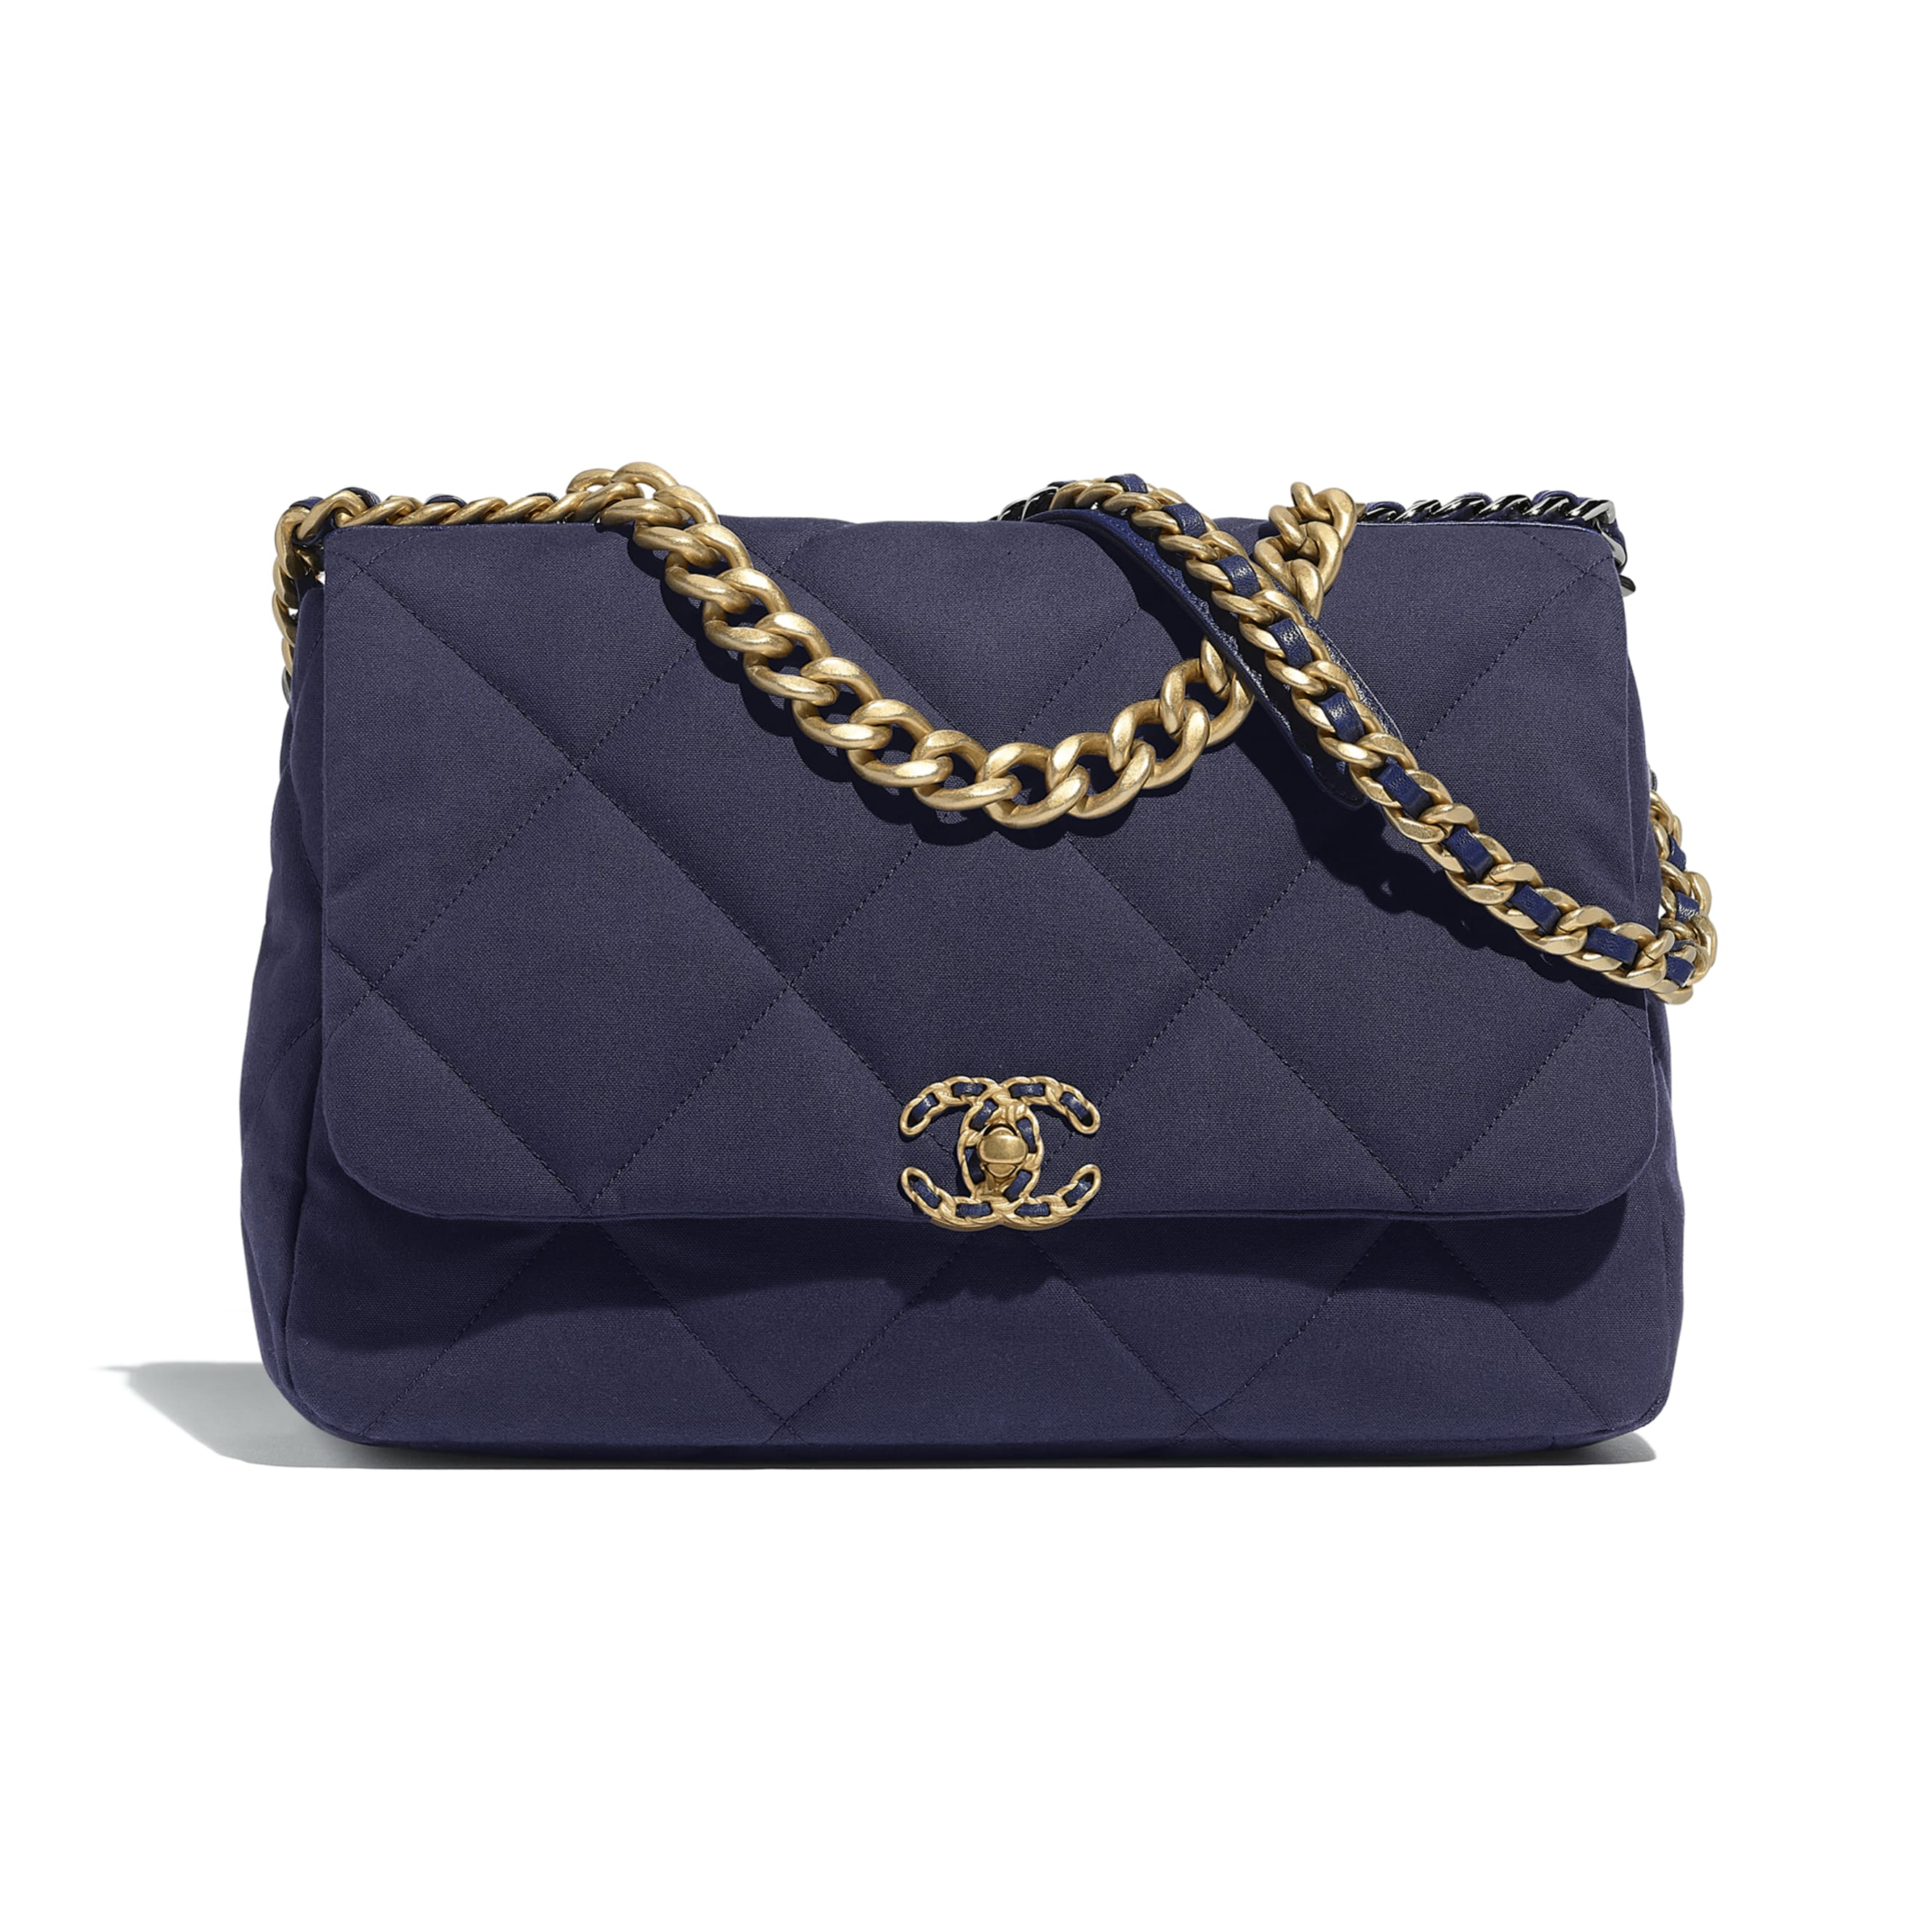 CHANEL 19 Maxi Flap Bag - Navy Blue - Cotton Canvas, Calfskin, Gold-Tone, Silver-Tone & Ruthenium-Finish Metal - Default view - see standard sized version